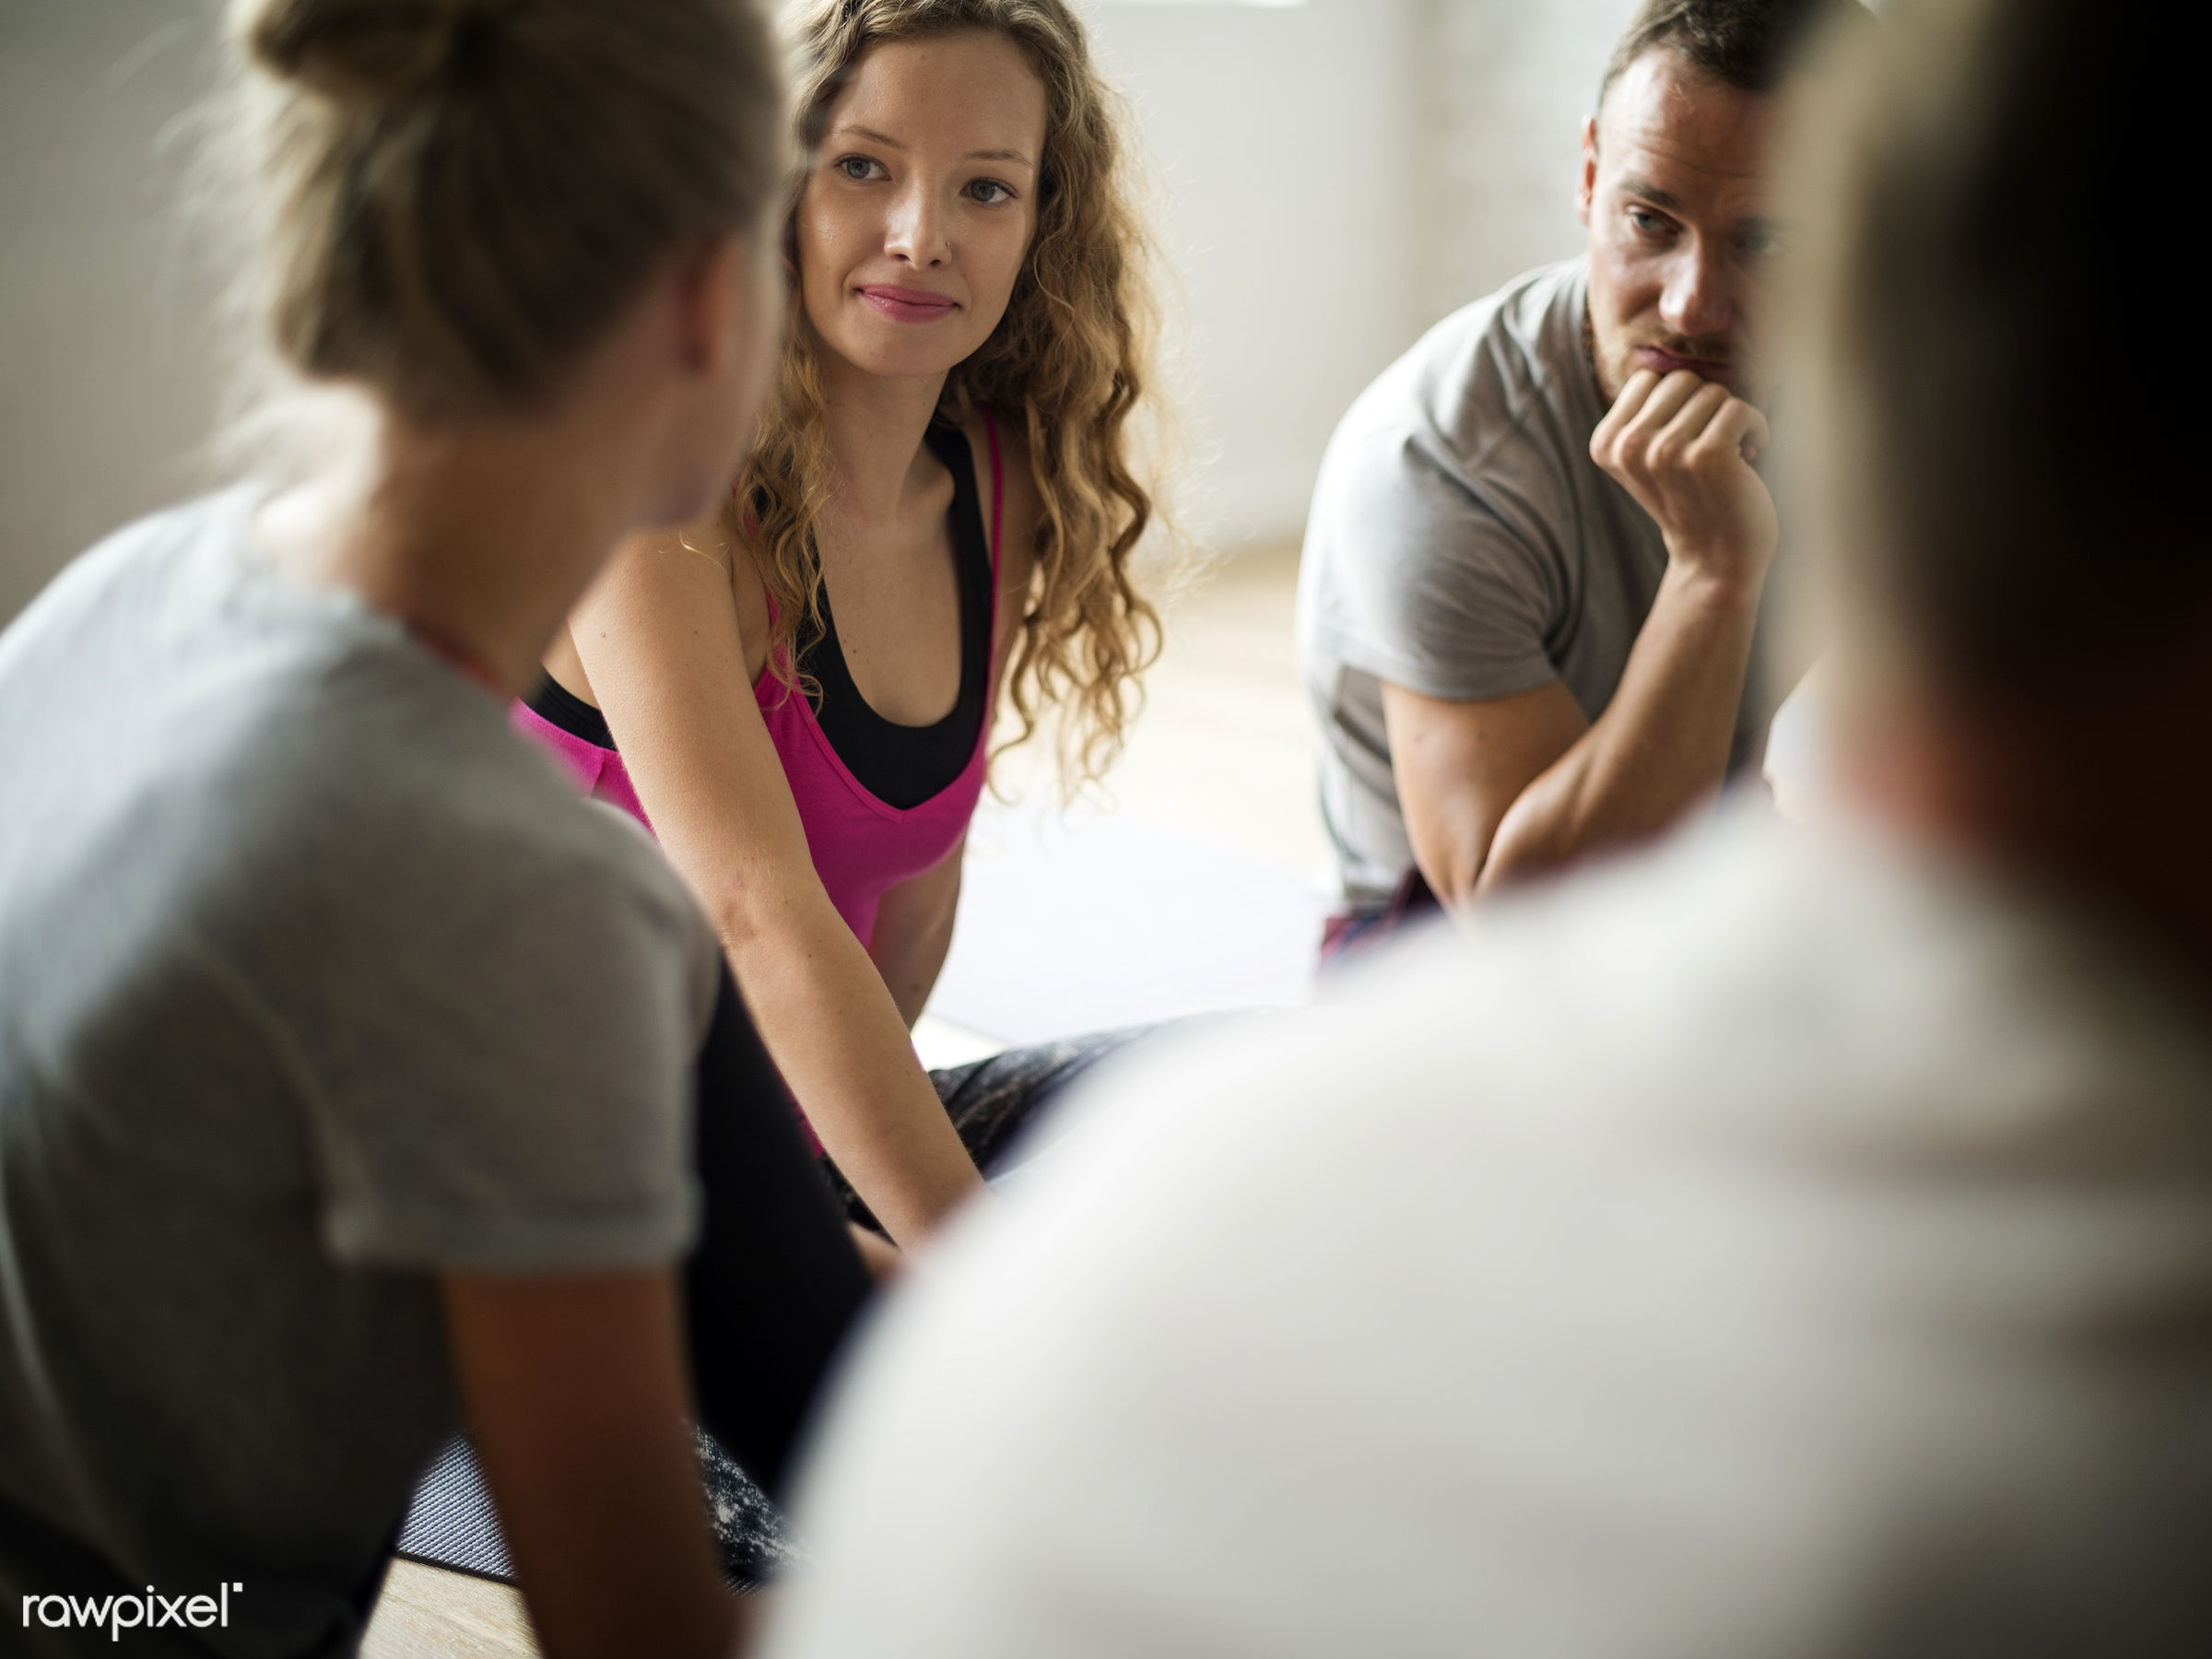 physical, discussion, diverse, relax, variation, recreation, stretching, people, together, break, friends, lifestyle, gym,...